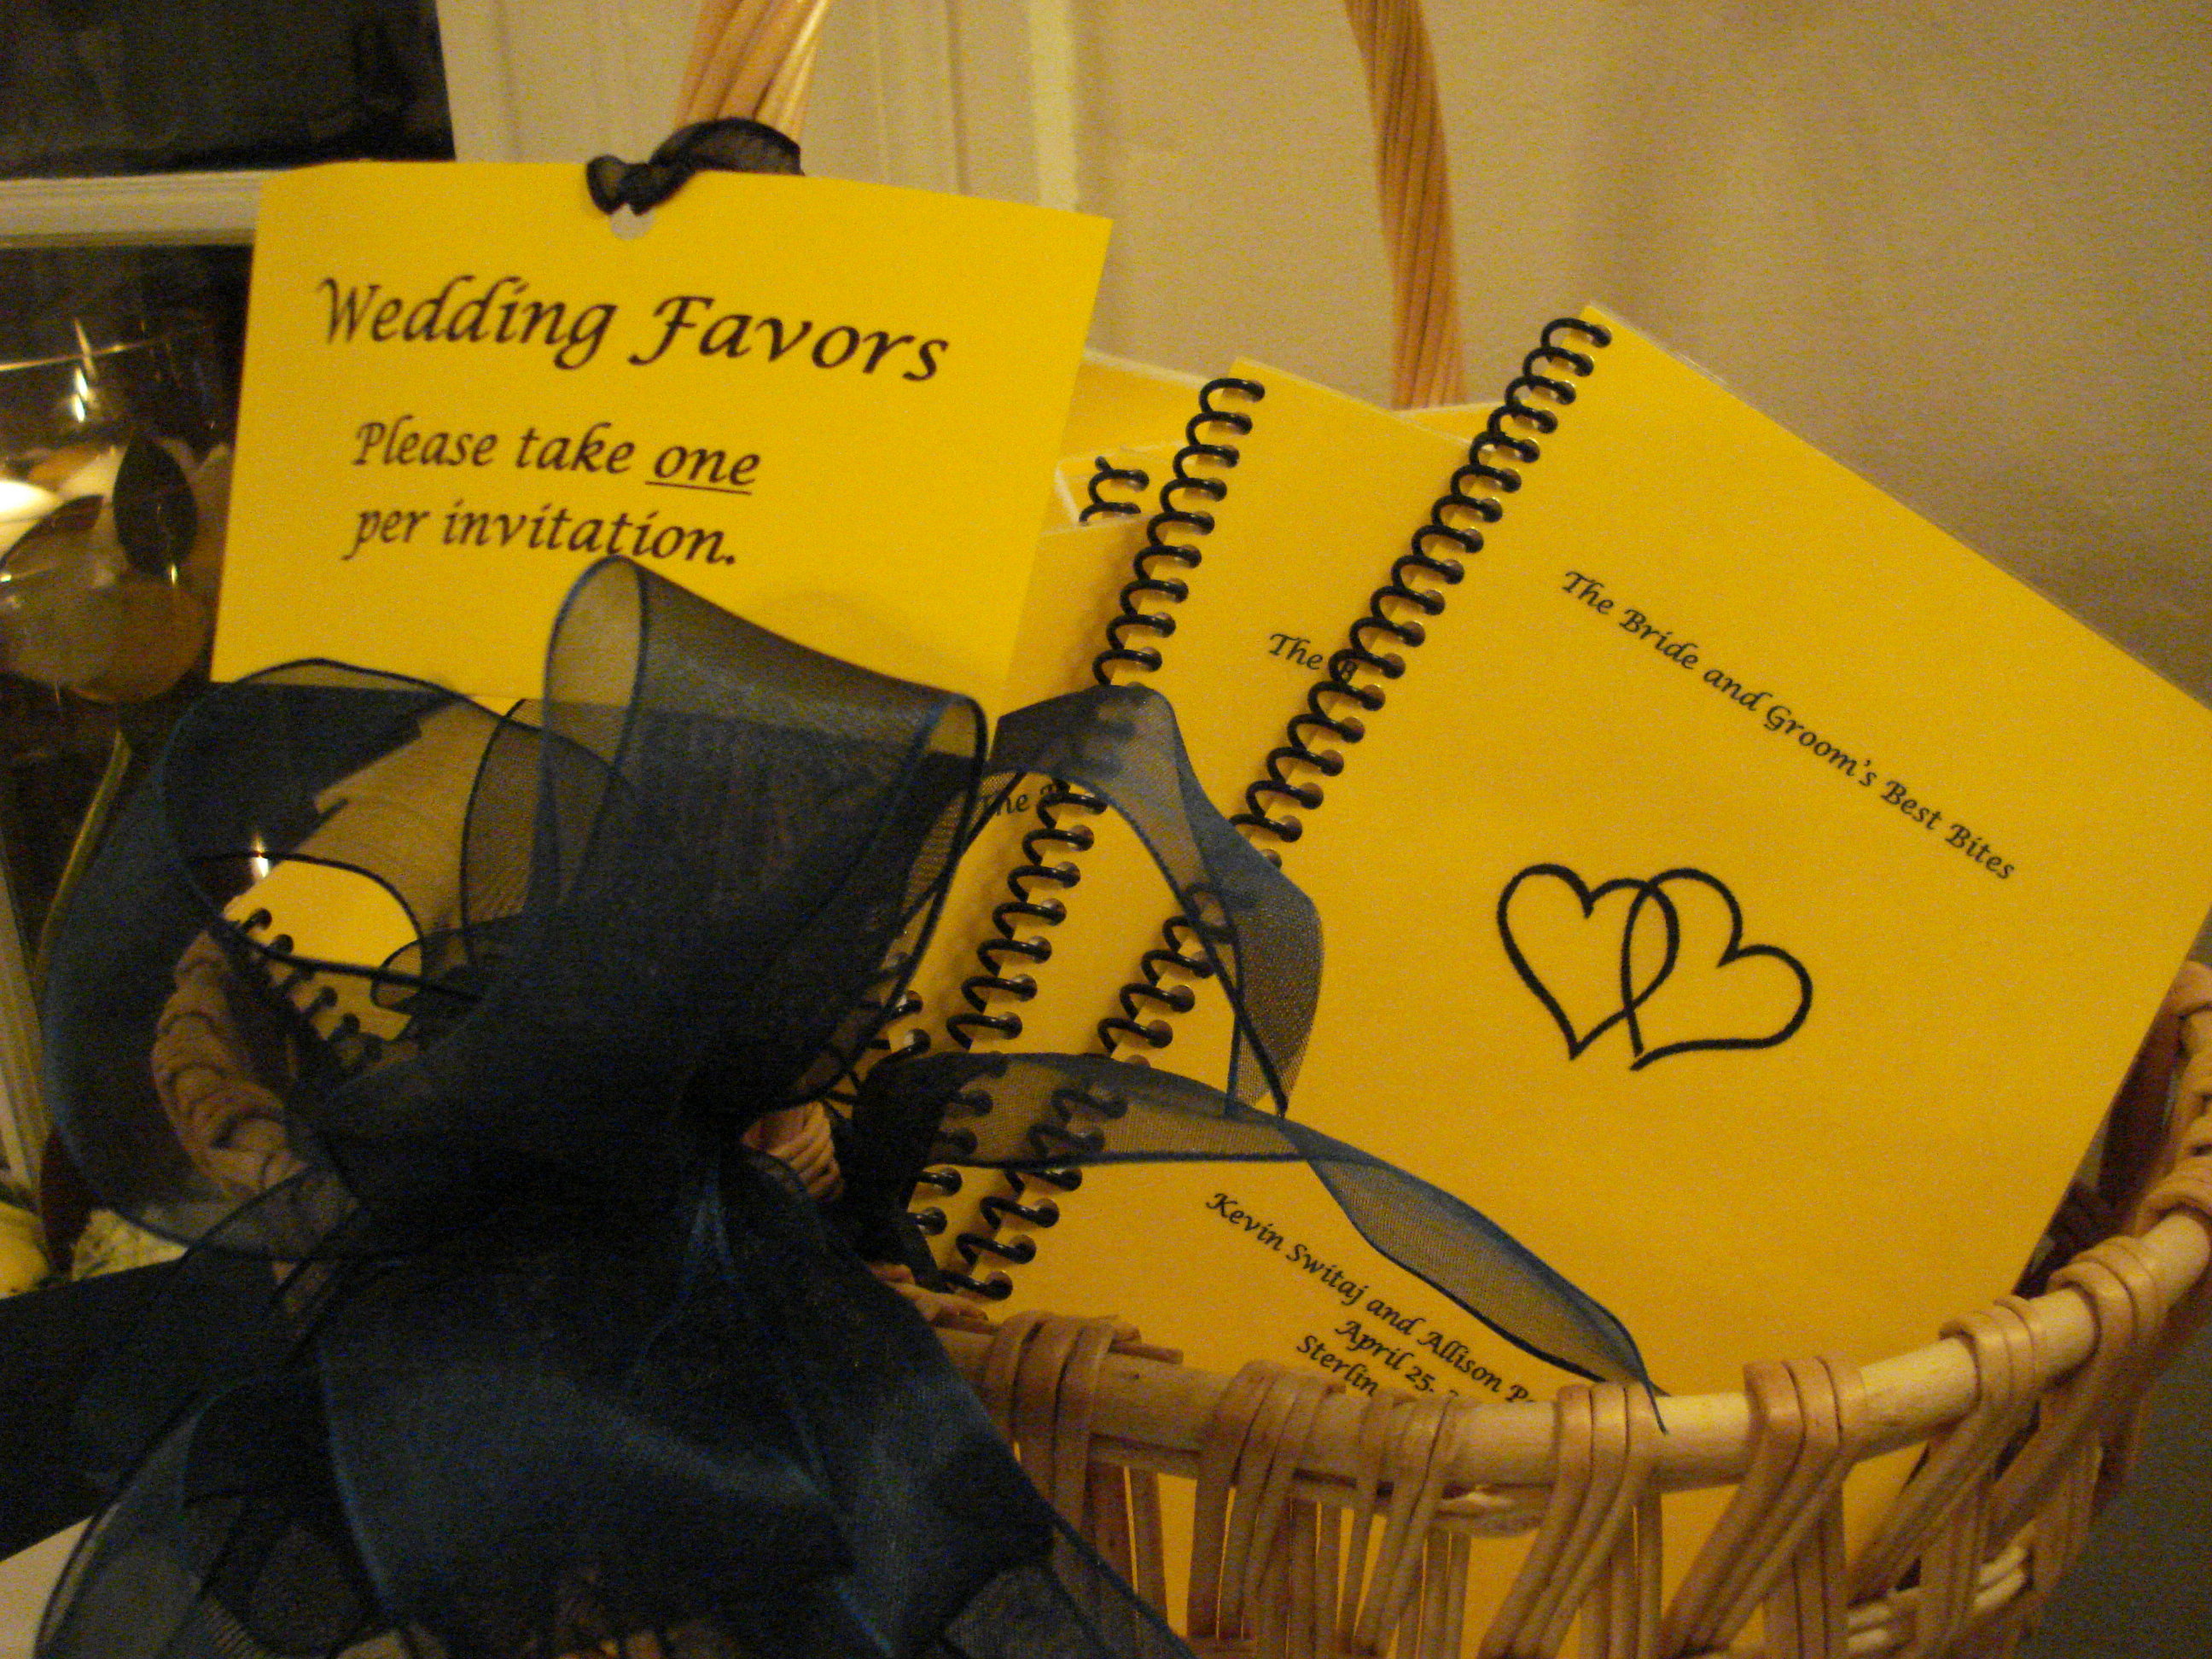 Cookbook wedding favors